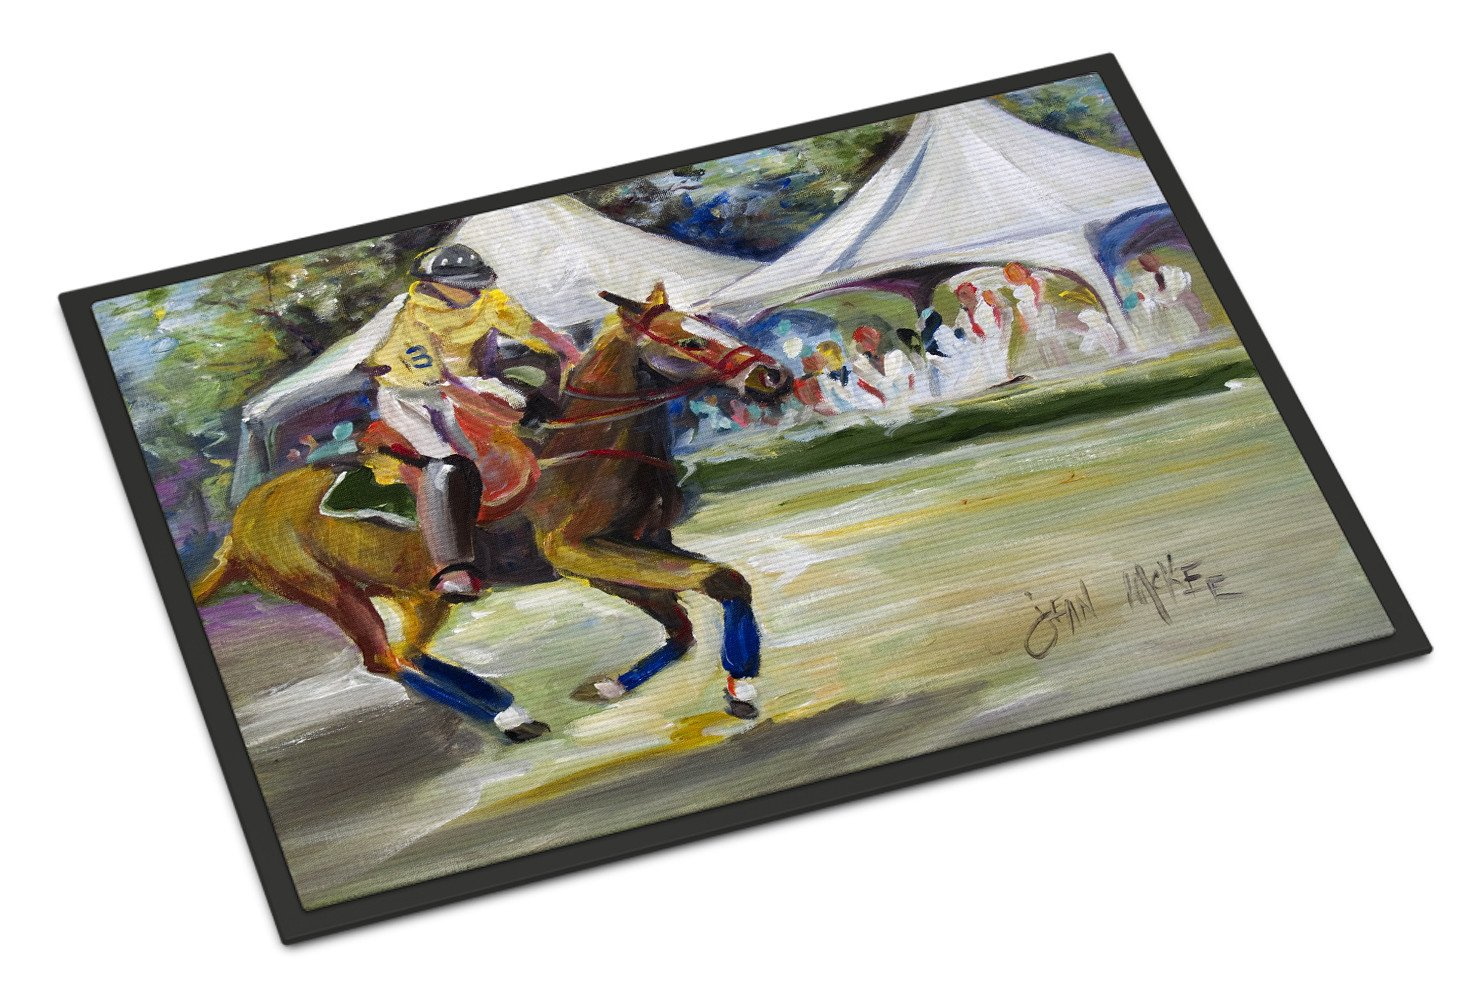 Polo at the Point Indoor or Outdoor Mat 24x36 JMK1008JMAT by Caroline's Treasures